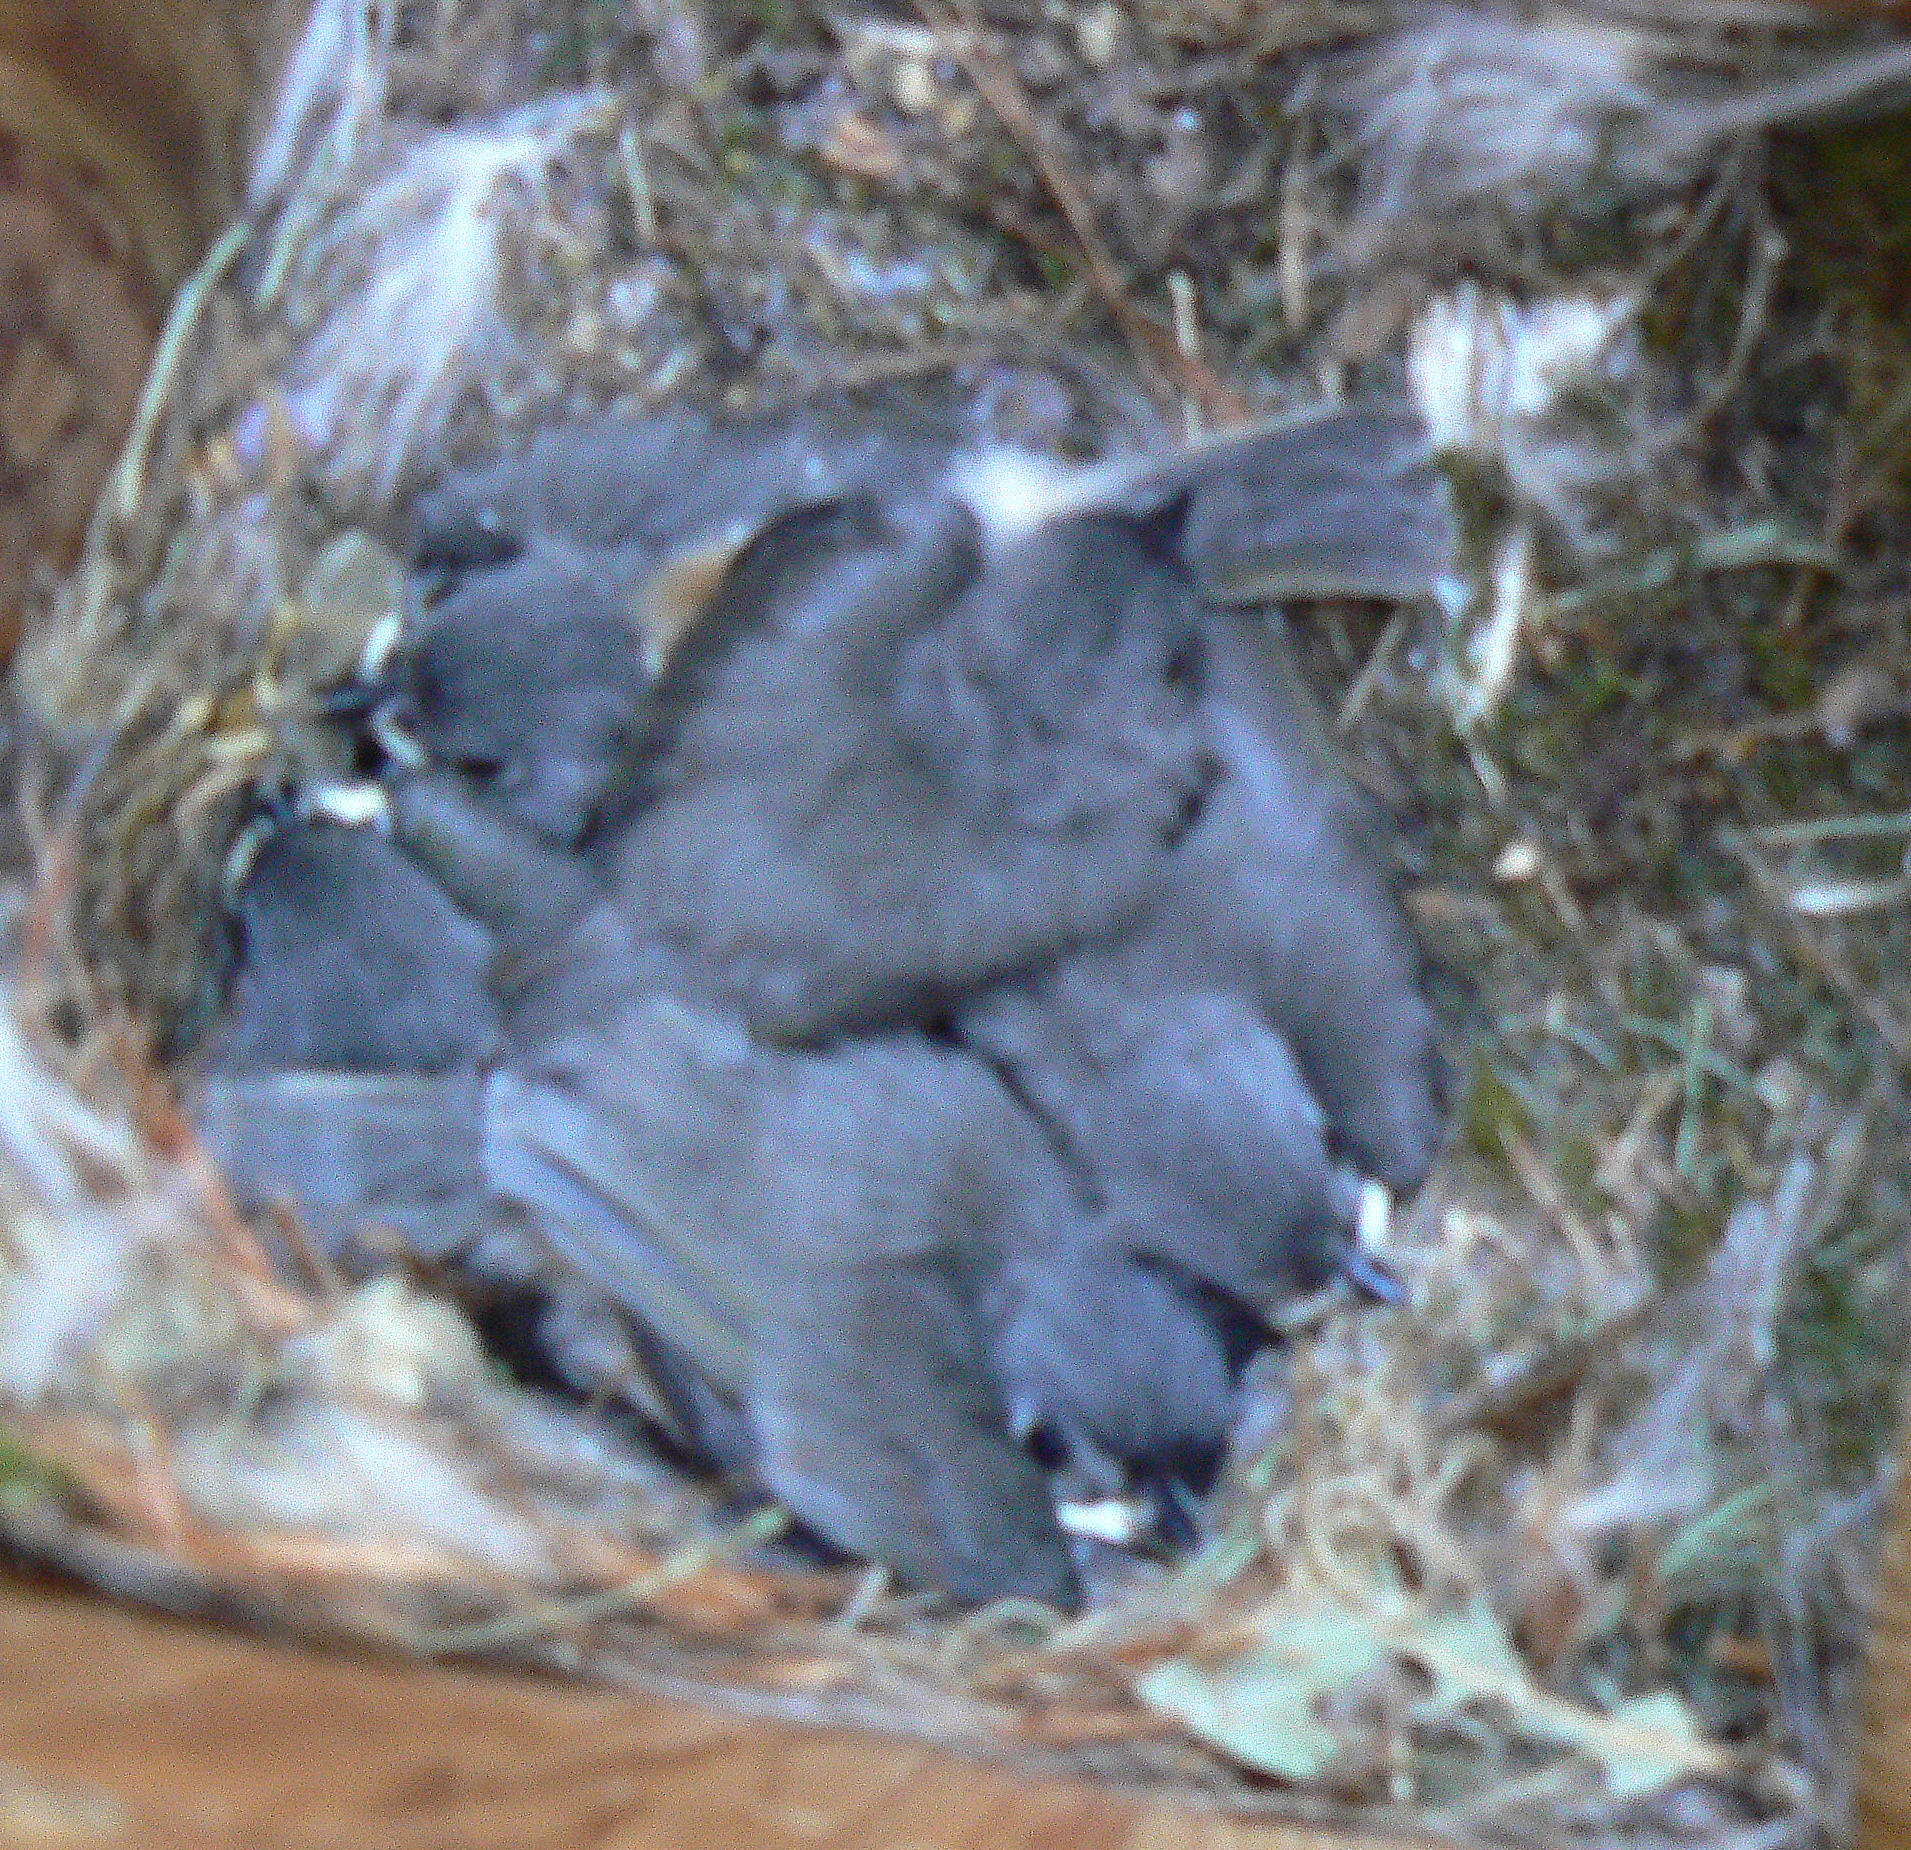 Peek in the bird box with me today. The chicks are growing.